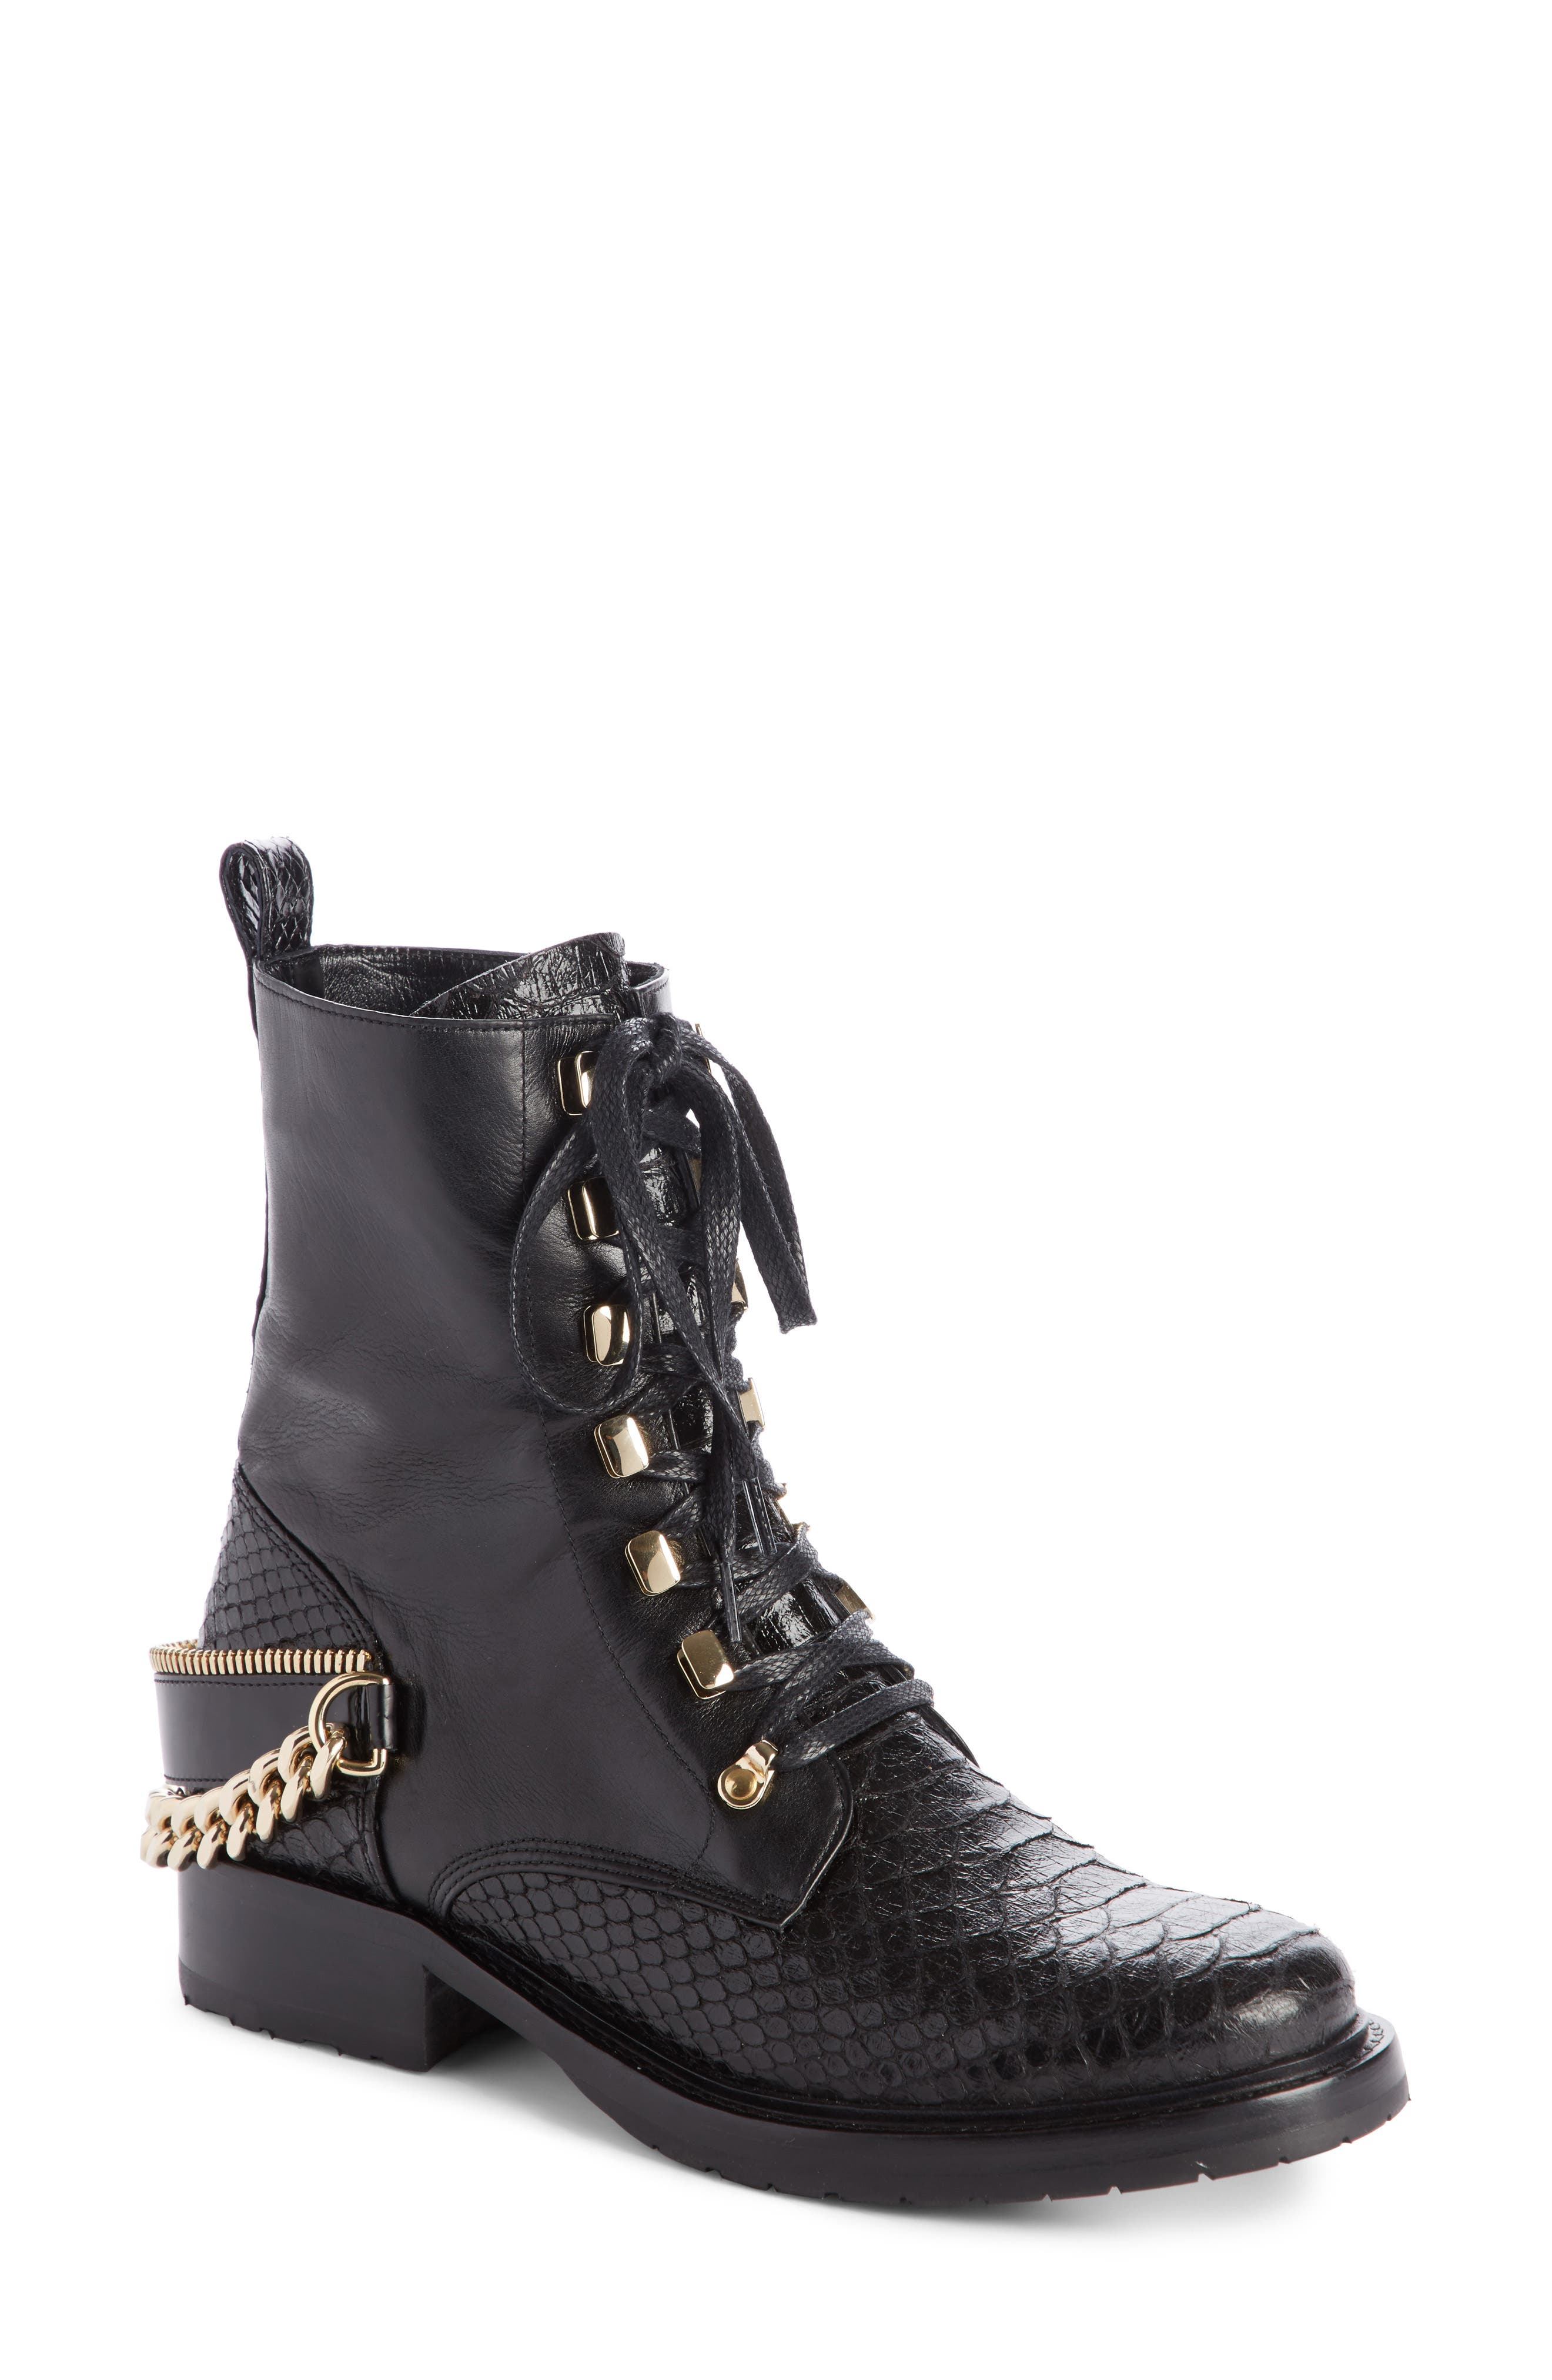 Main Image - Lanvin Chain Biker Boot (Women)